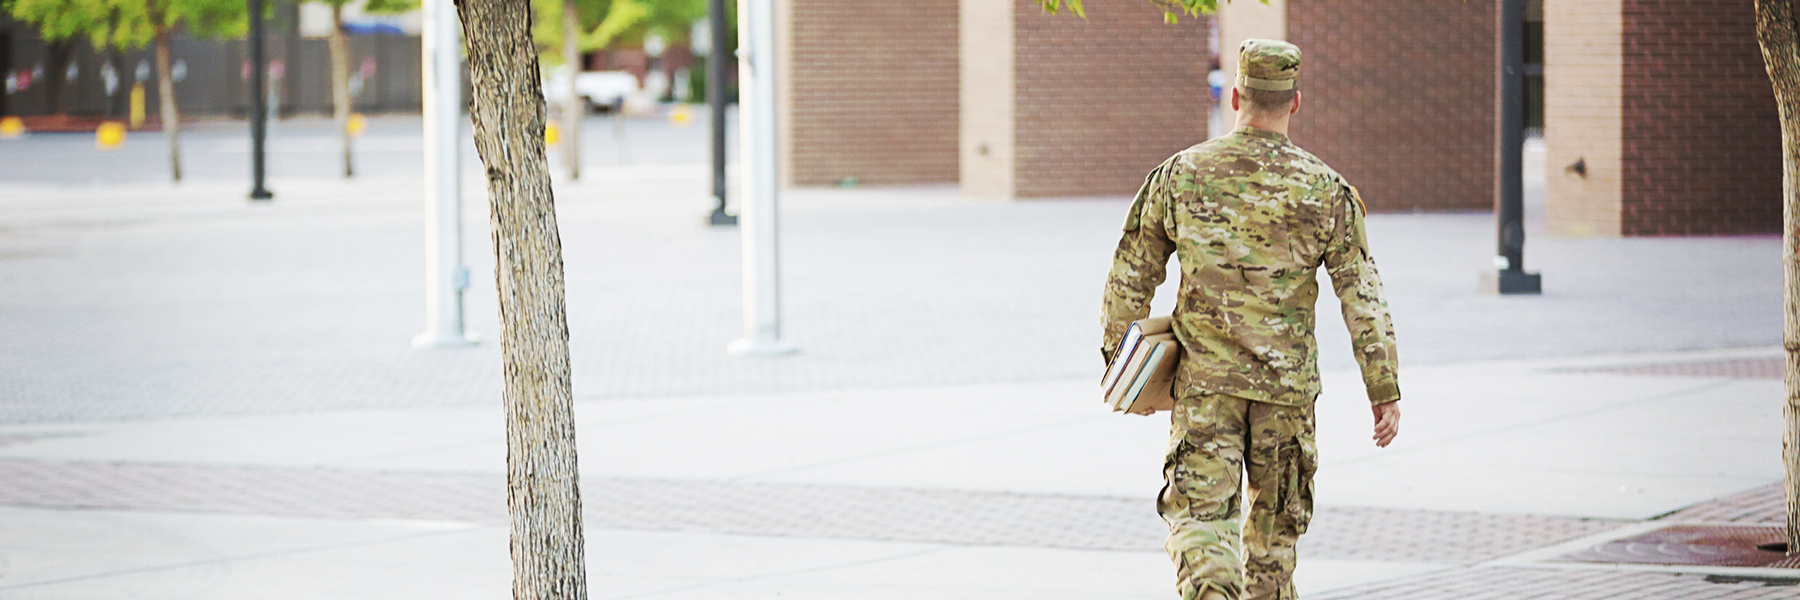 Man in uniform walking on campus with books under his arm